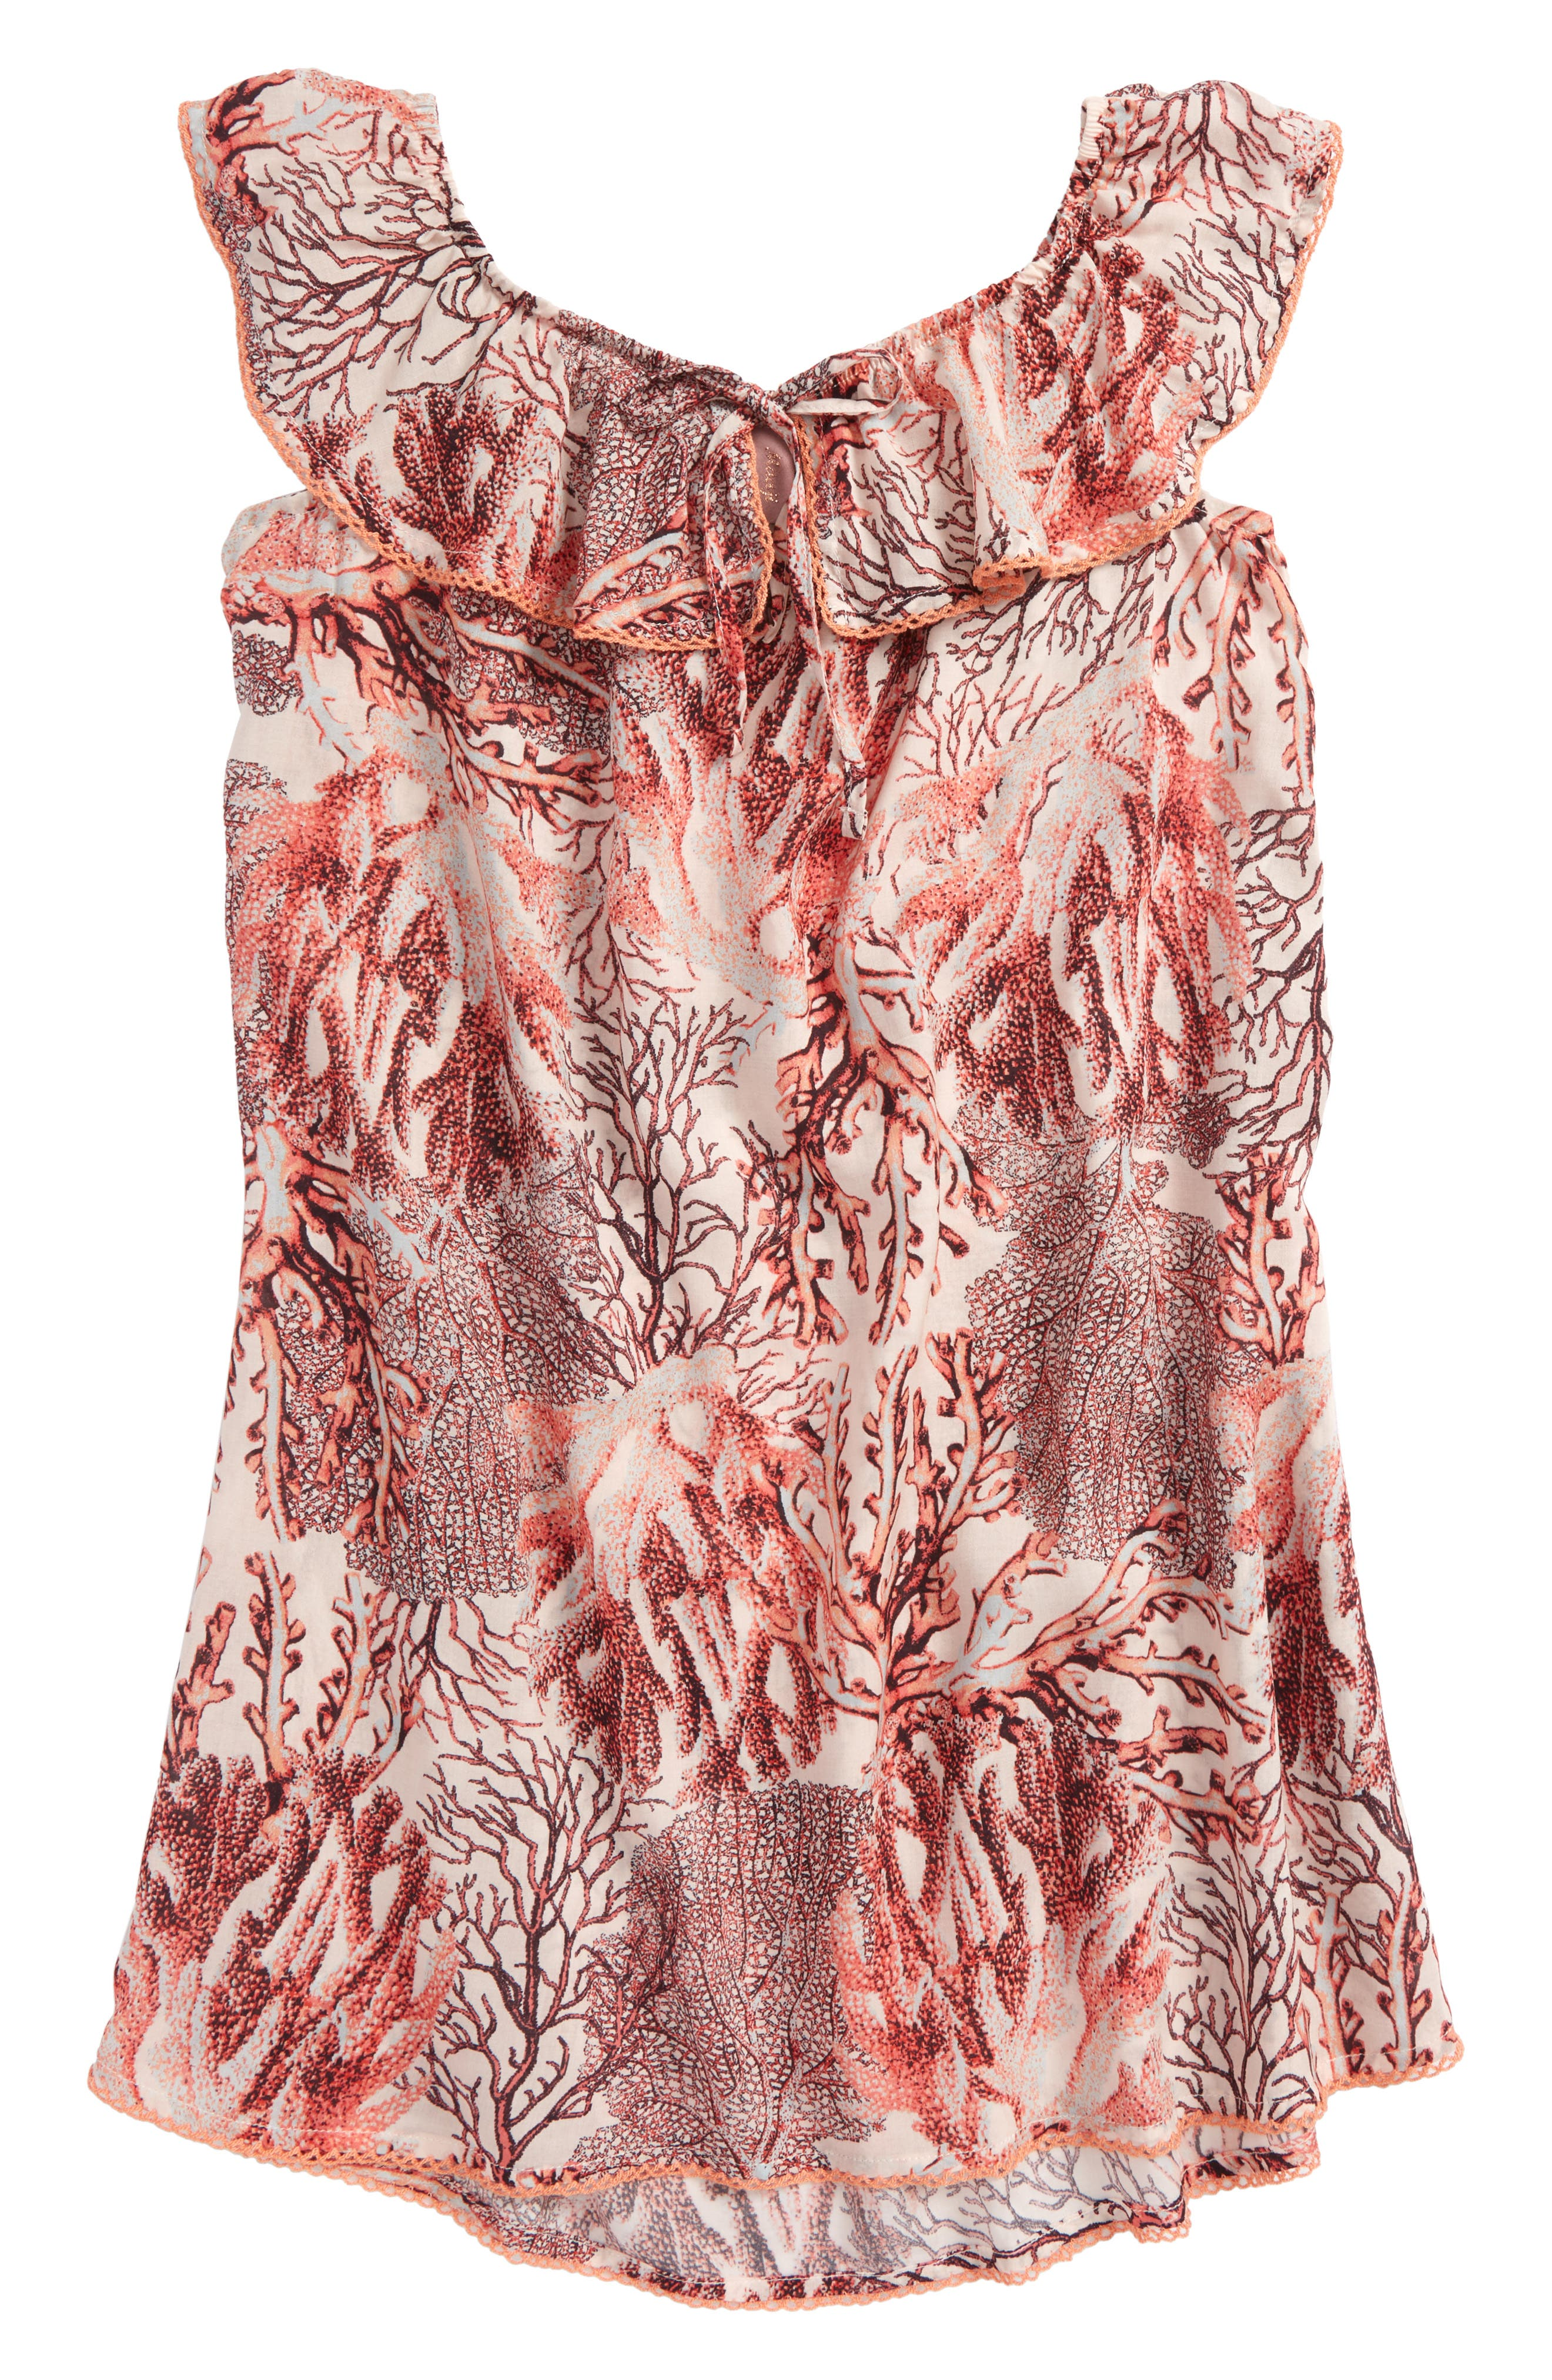 Starfish Wishes Ruffle Cover-Up Dress,                         Main,                         color, Pink